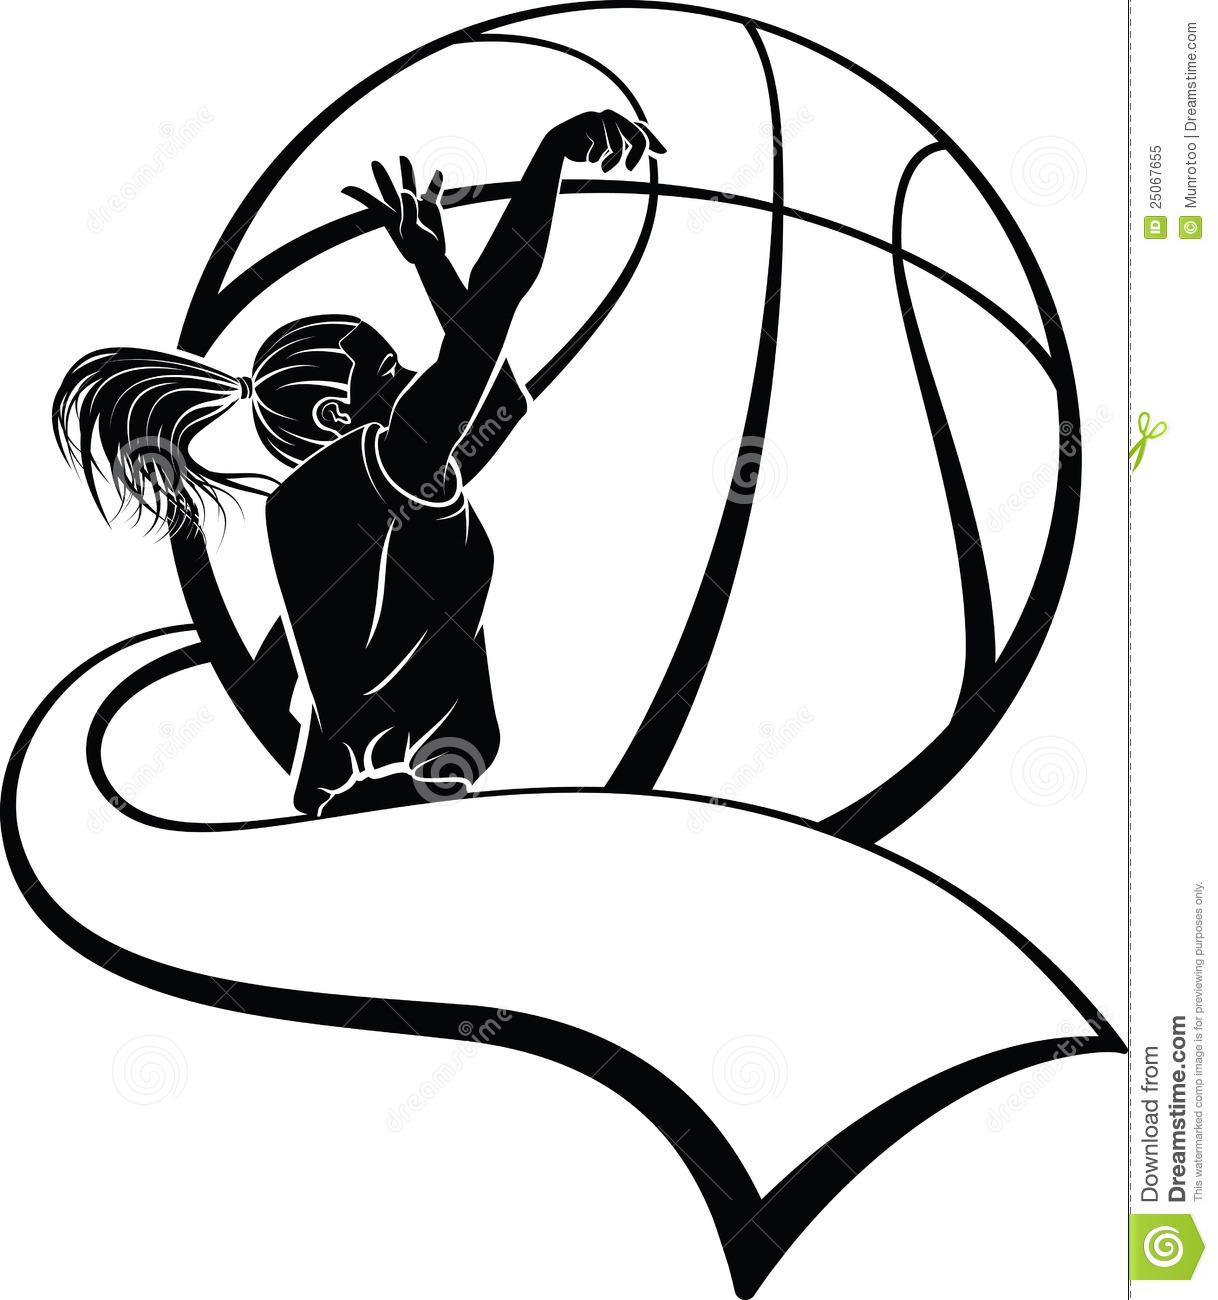 1218x1300 Basketball Player Clipart Black And White